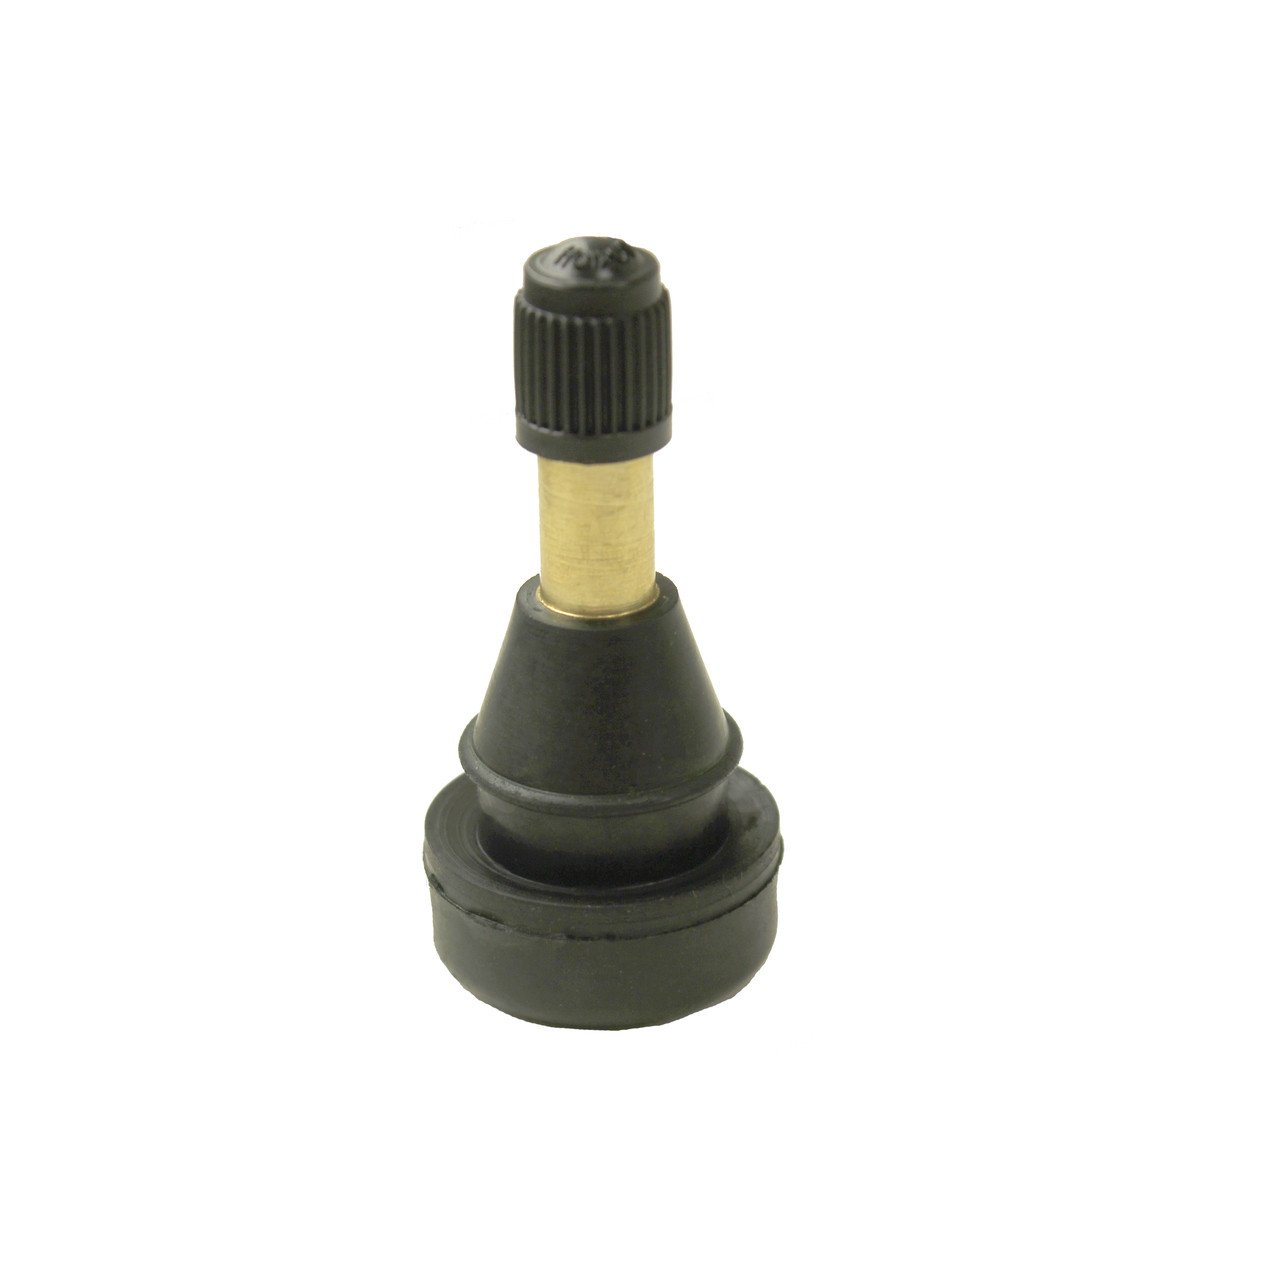 "TR801 - High Pressure Snap-In Valve Stem for 0.625"" Valve Holes (0-100 PSI)"